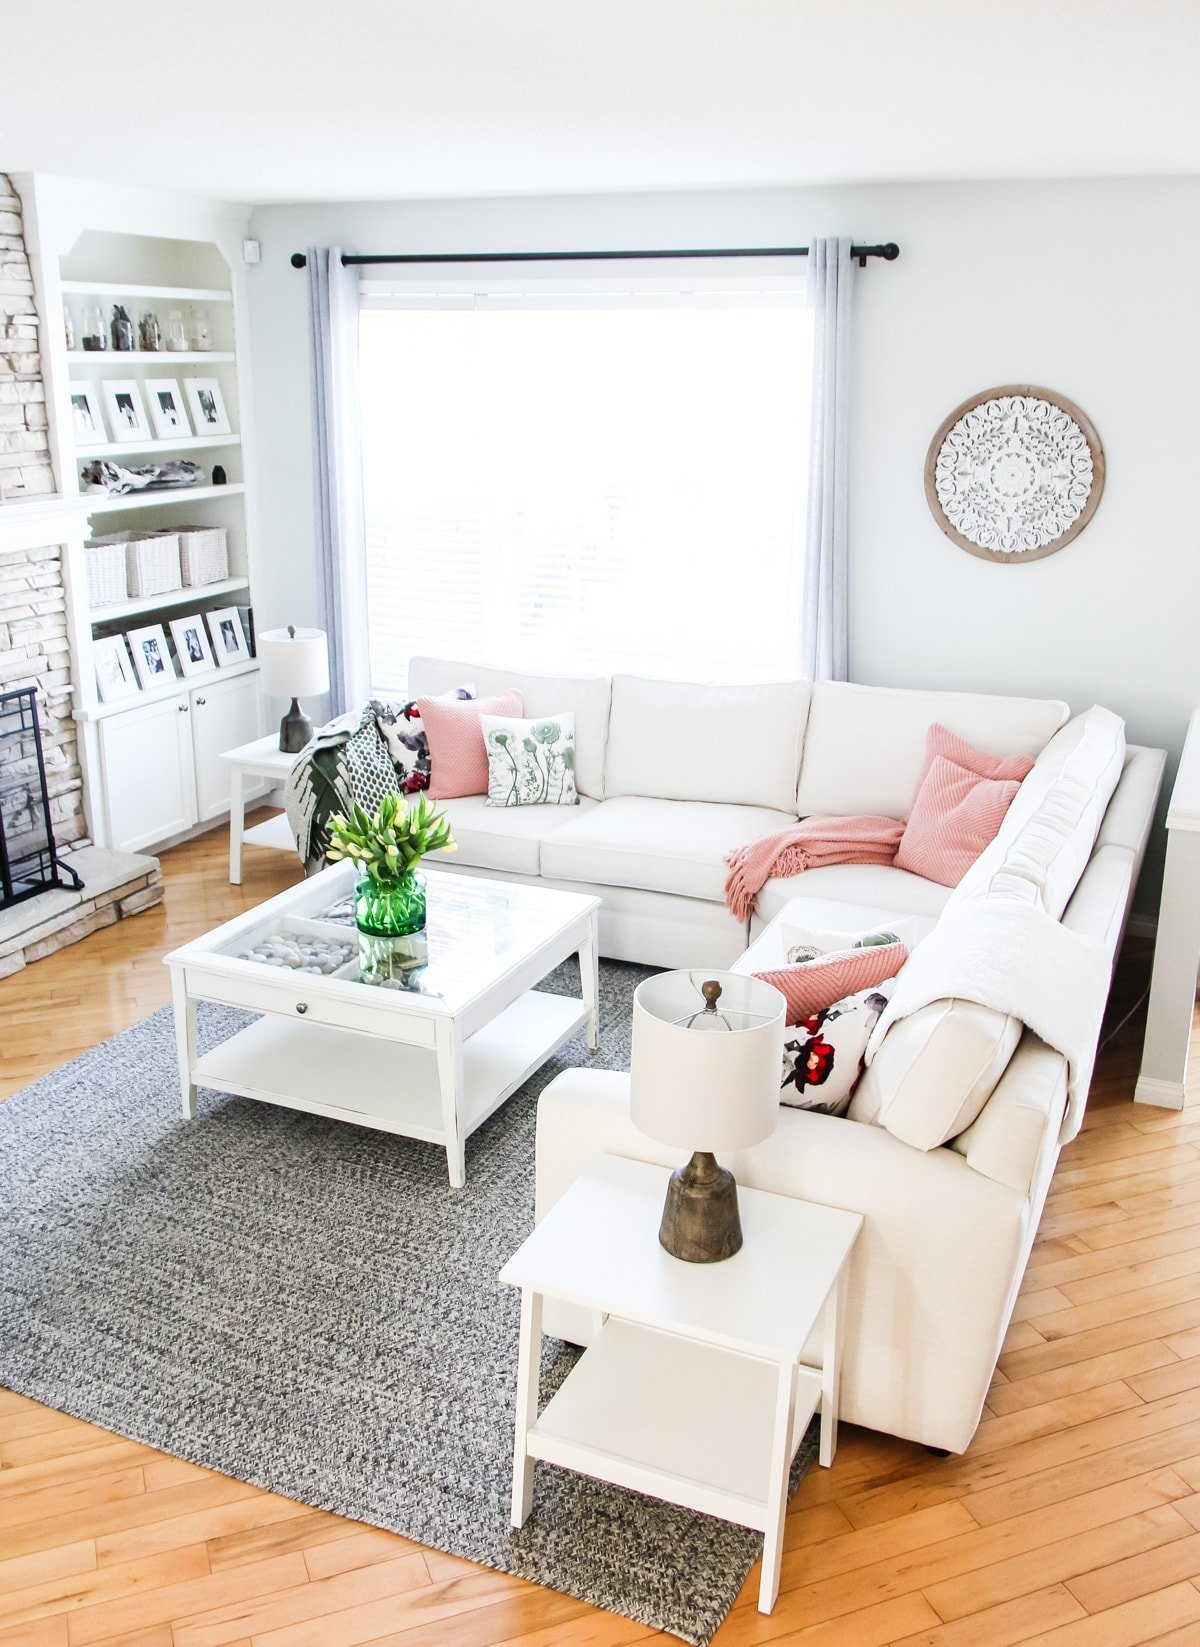 a picture of a white sectional couch in a living room. with throw pillows and blankets. on a coffee table is a bouquet of tulips